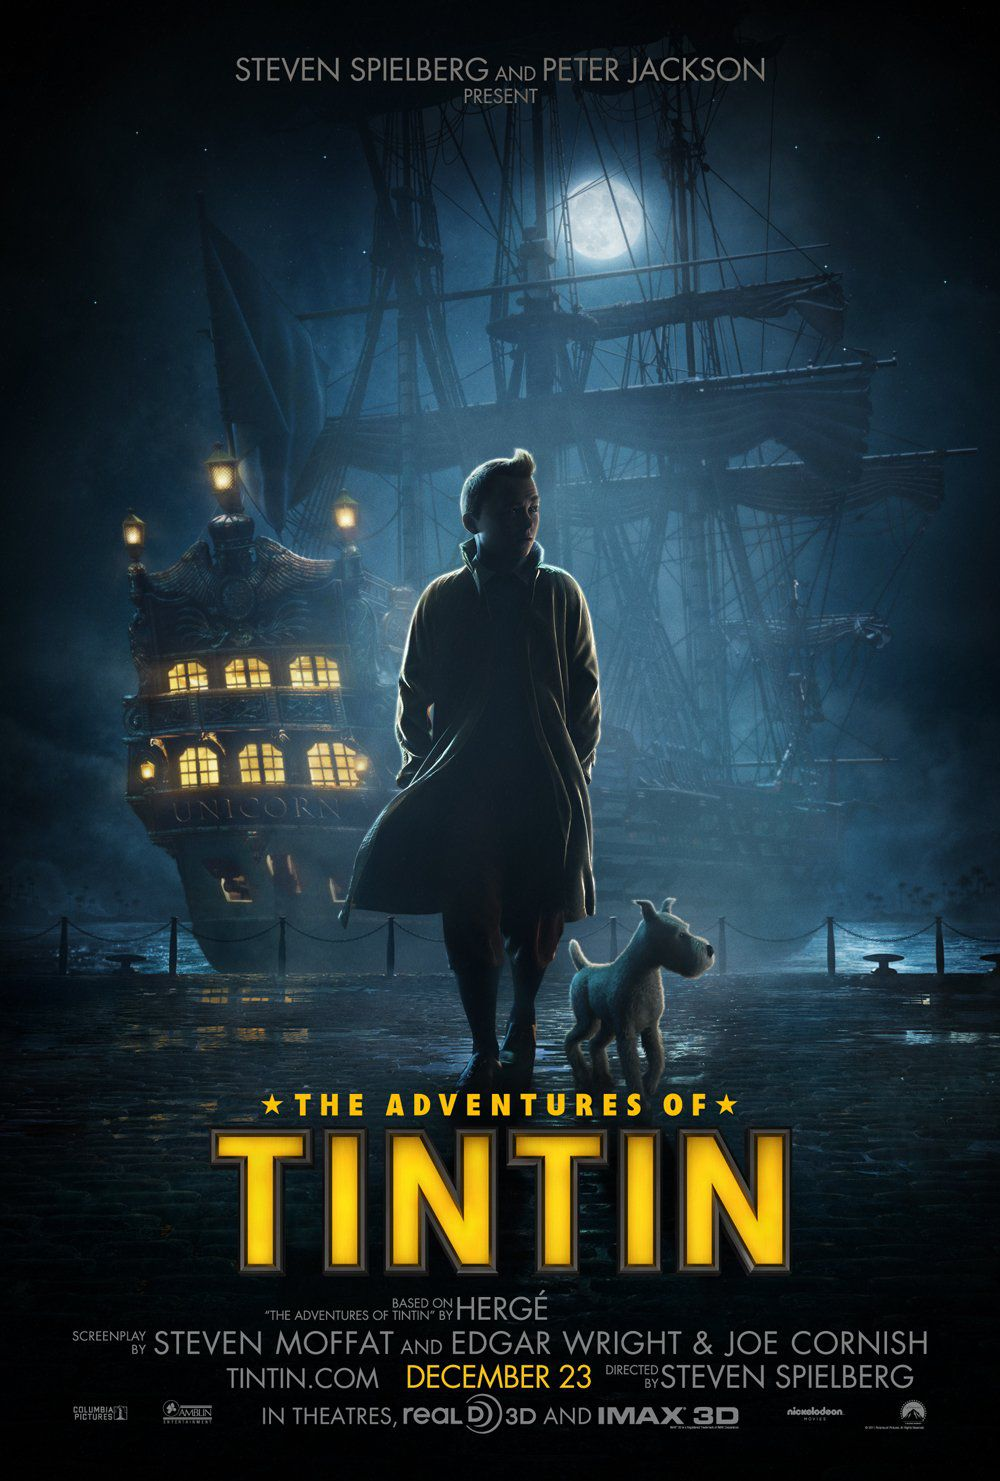 Veliero - Sail - Le Avventure di Tintin il segreto dell'Unicorno - Adventures of Tintin secret of the Unicorn - live action film poster